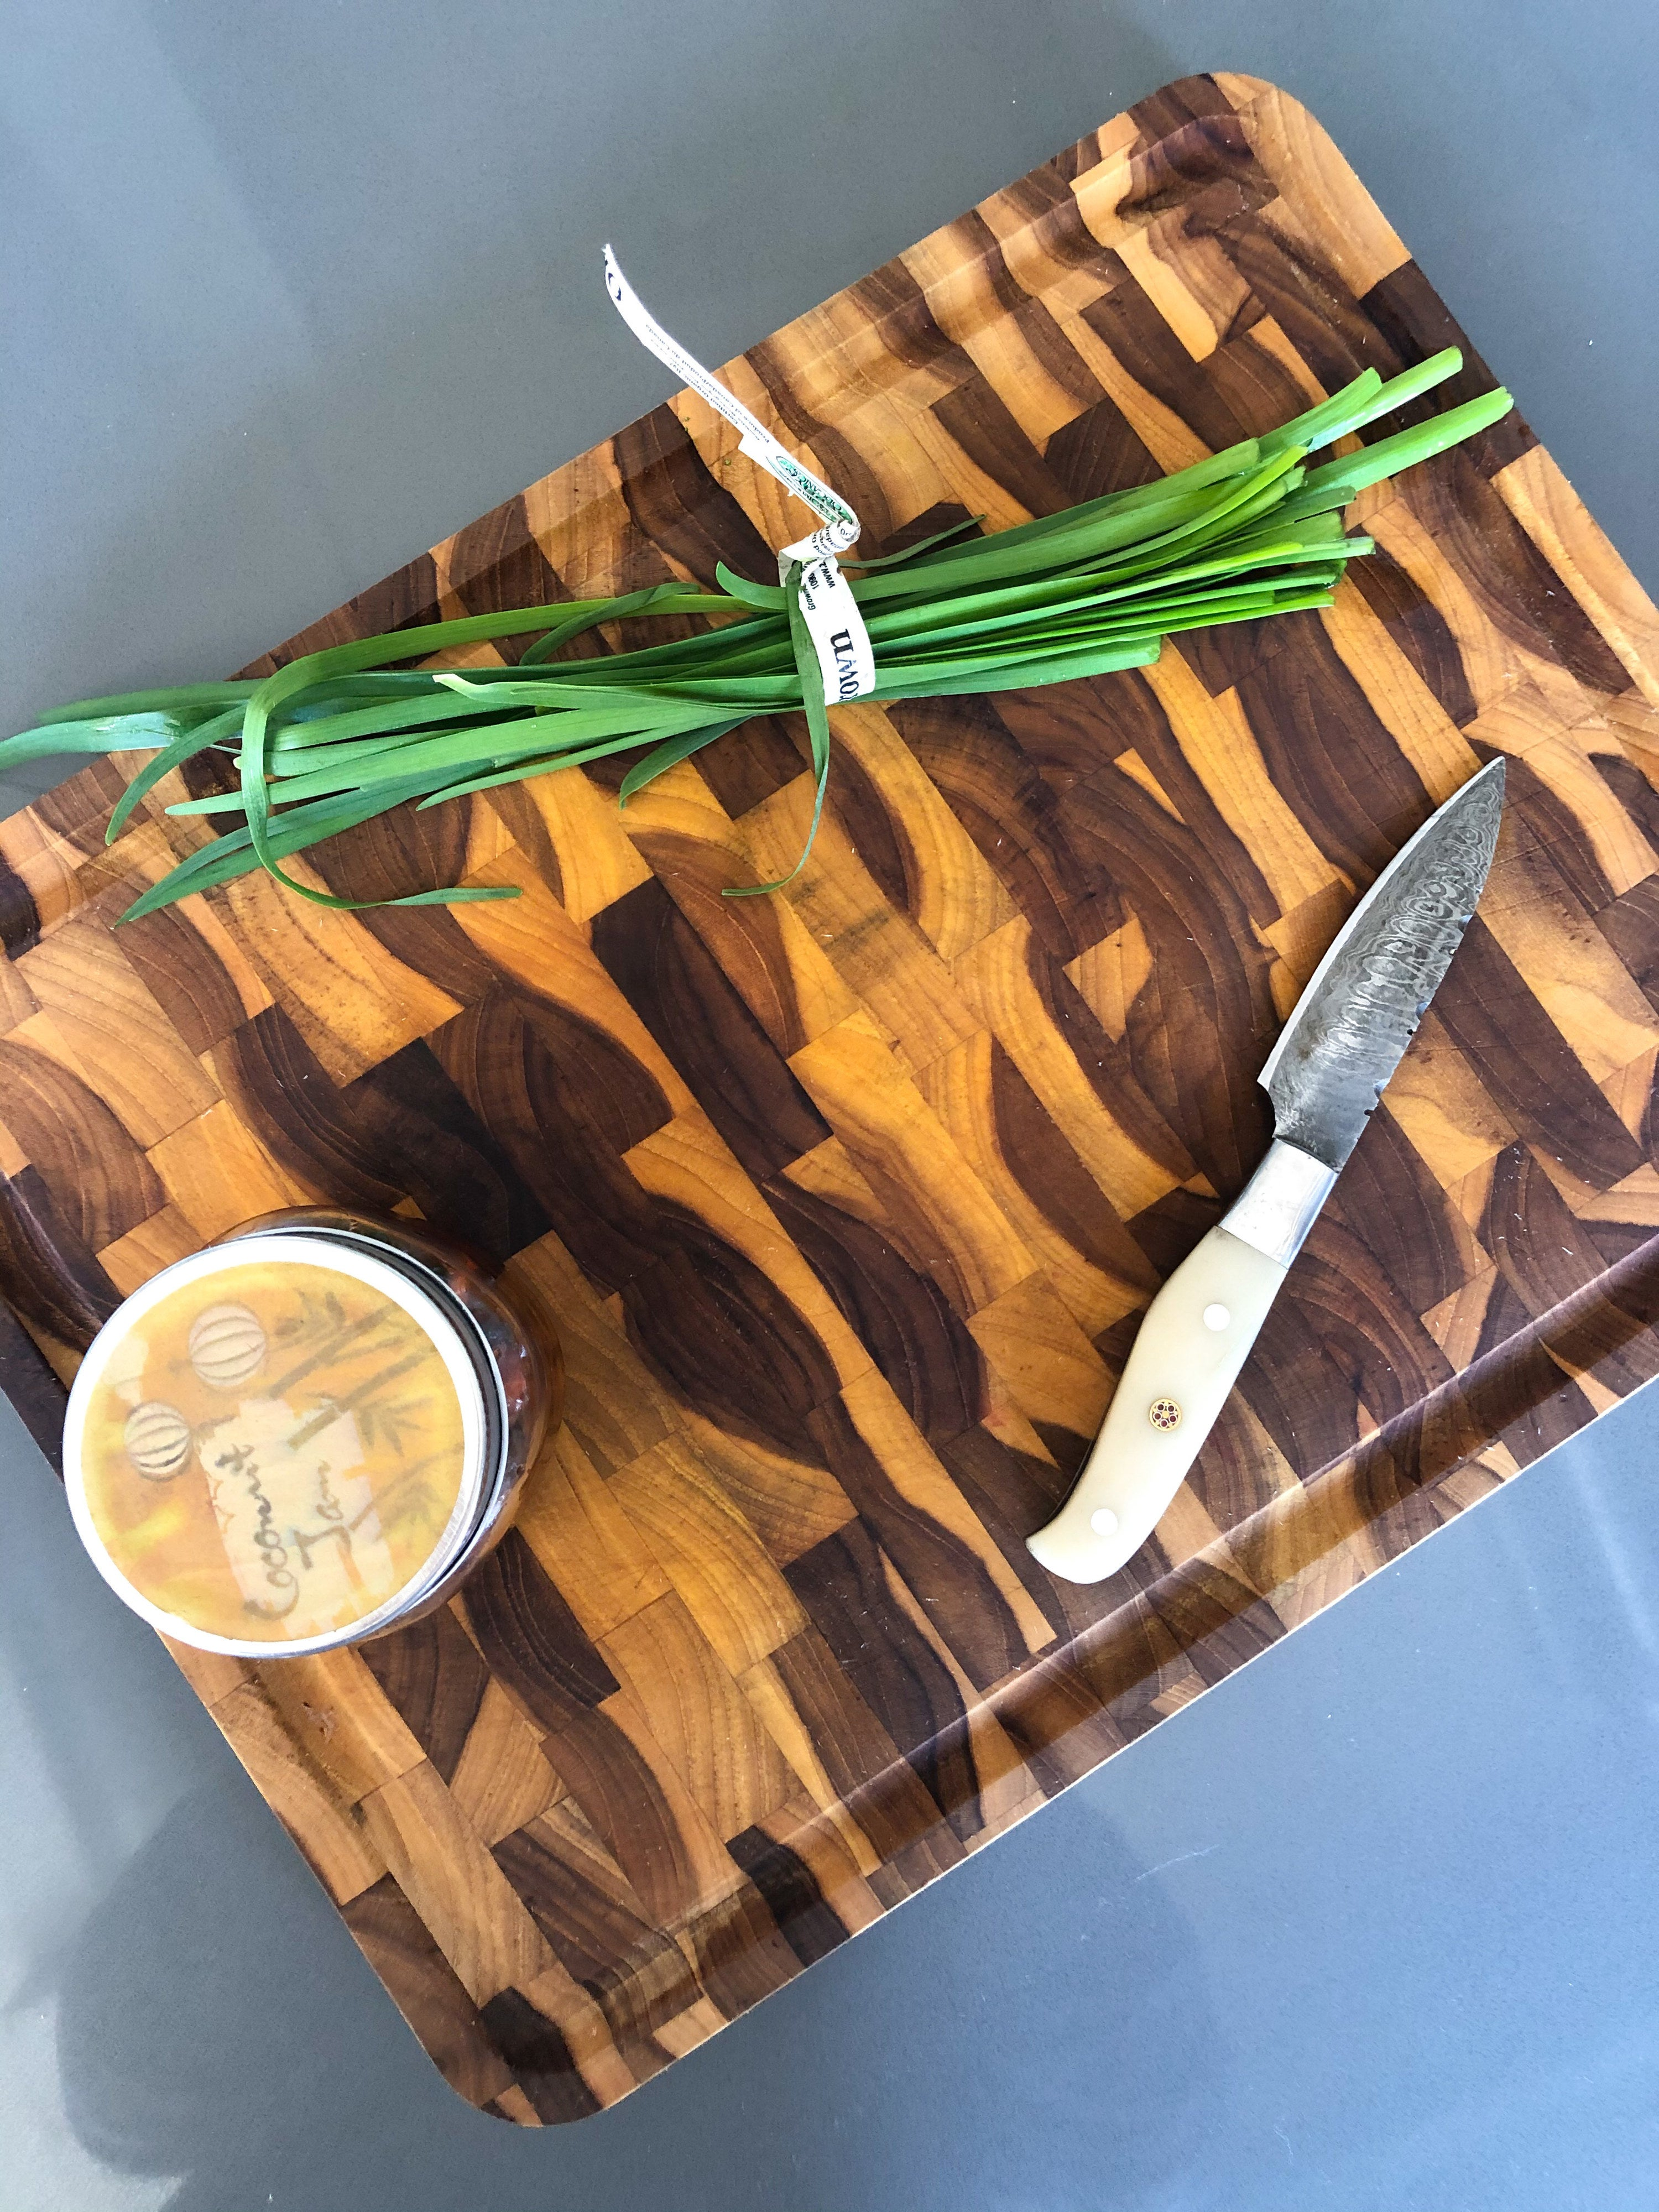 A flatlay of the end-grain butcher block cutting board with a chic knife and fresh herbs on top